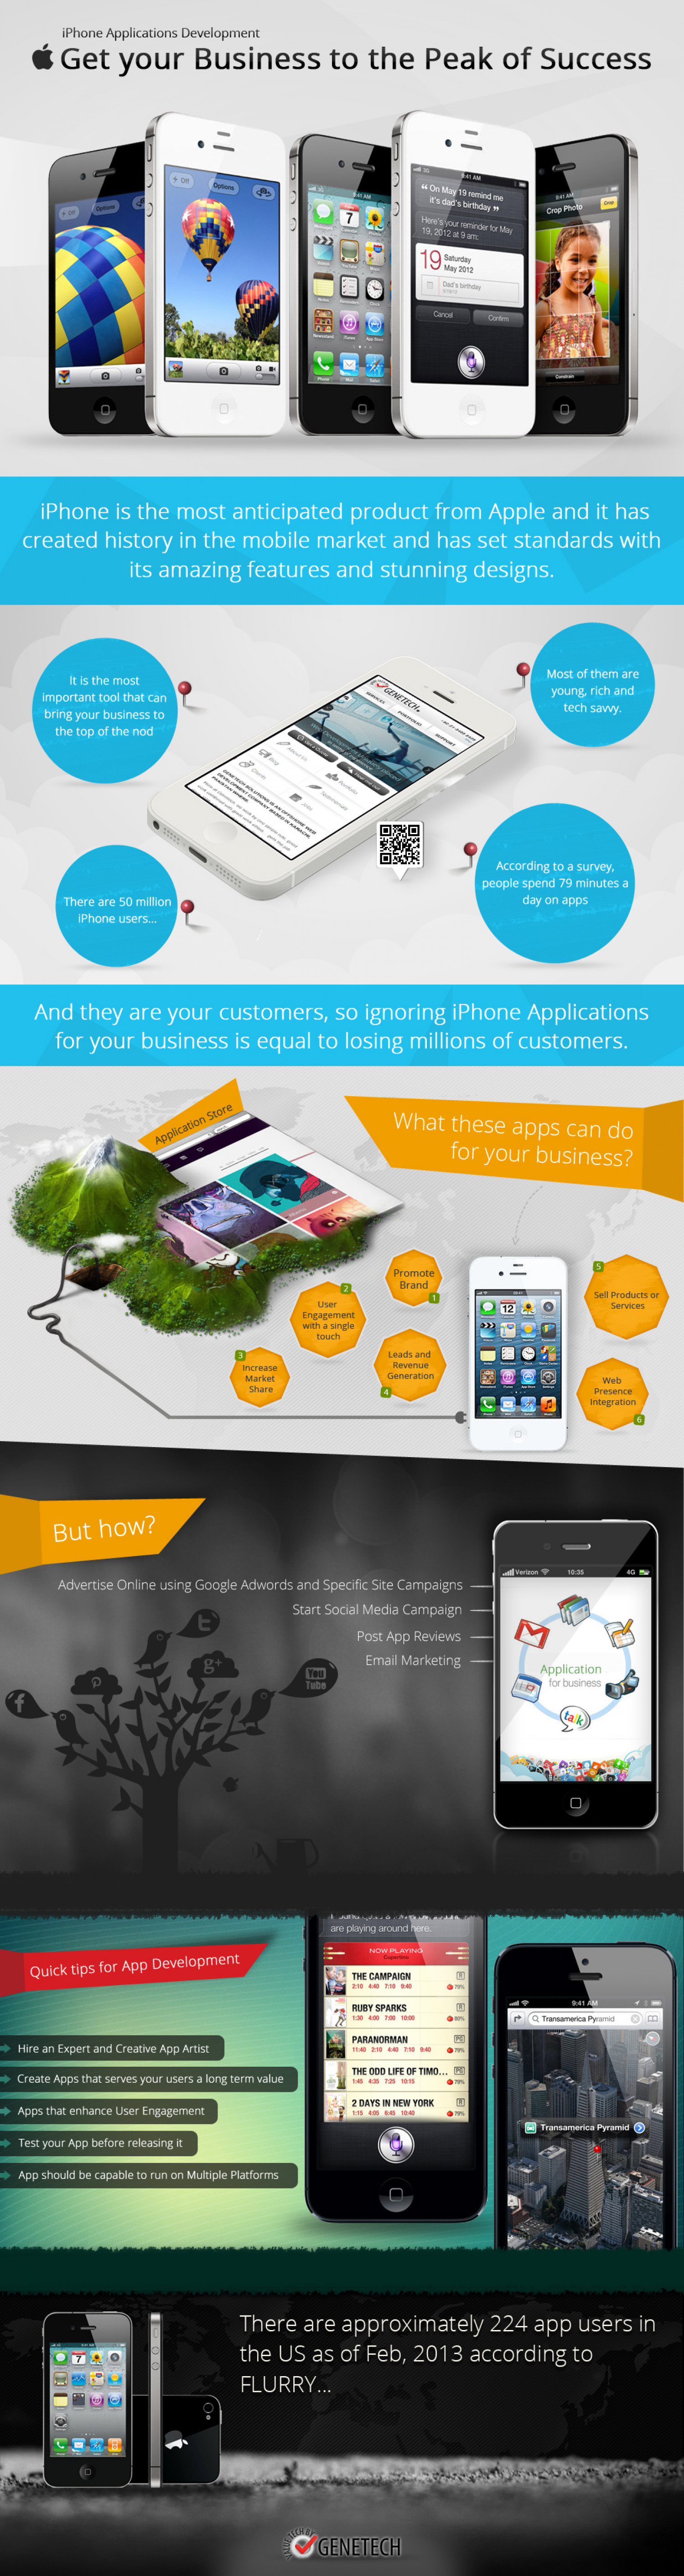 iPhone Applications Development – Get your Business to the Peak of Success Infographic